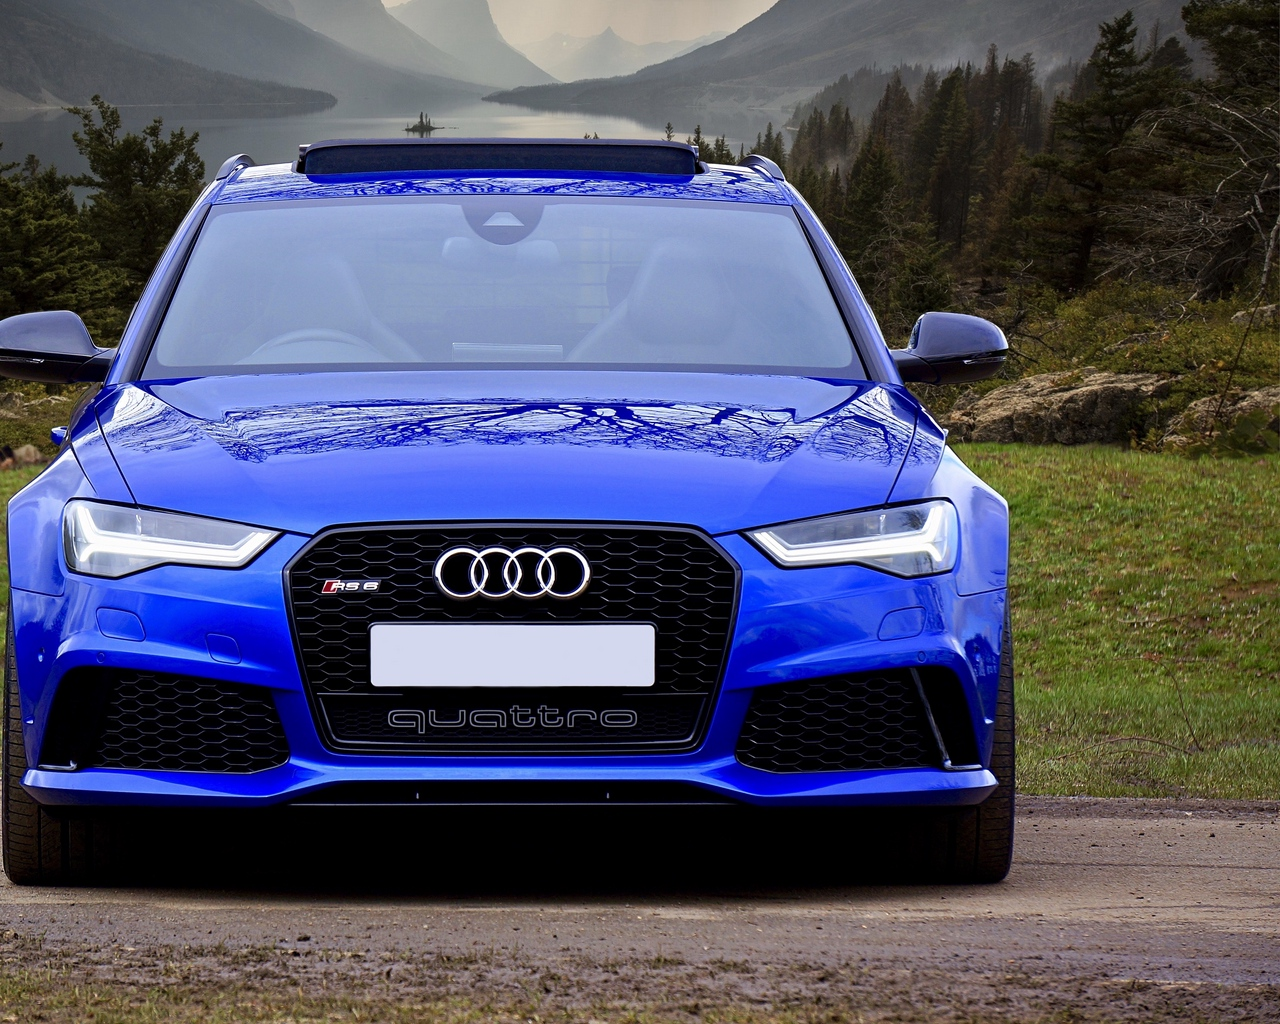 Wallpaper Audi Rs6 Audi Car Blue Front View Audi Car Wallpaper Hd For Mobile 2170663 Hd Wallpaper Backgrounds Download